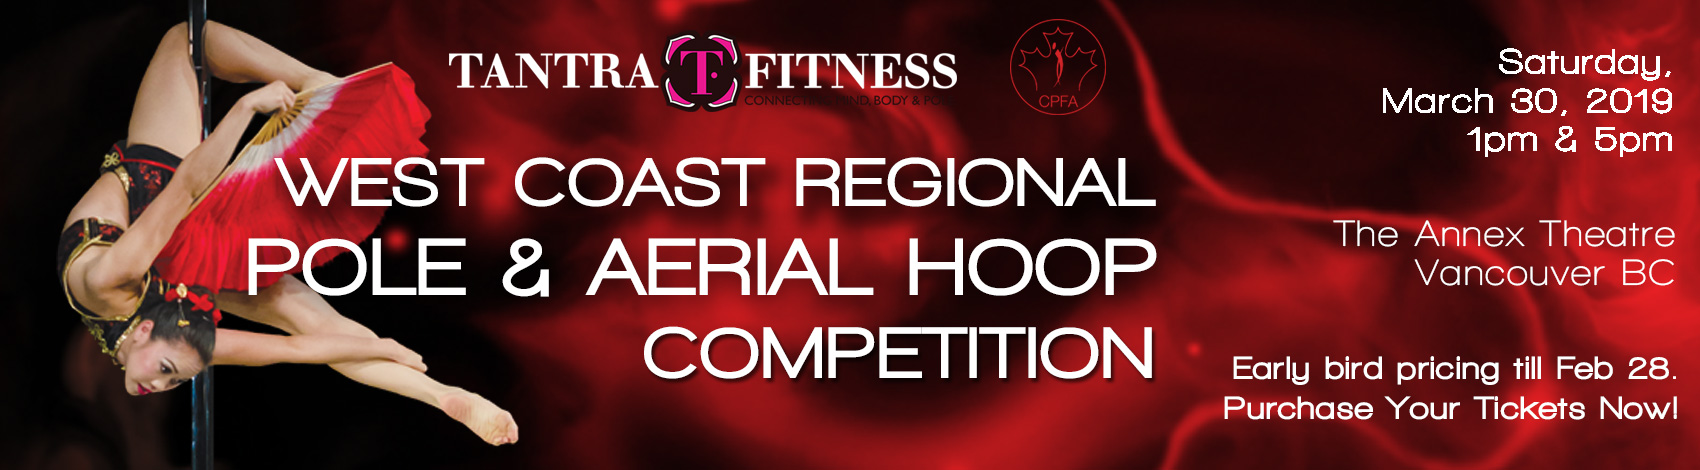 West Coast Regional Pole & Aerial Hoop Competition